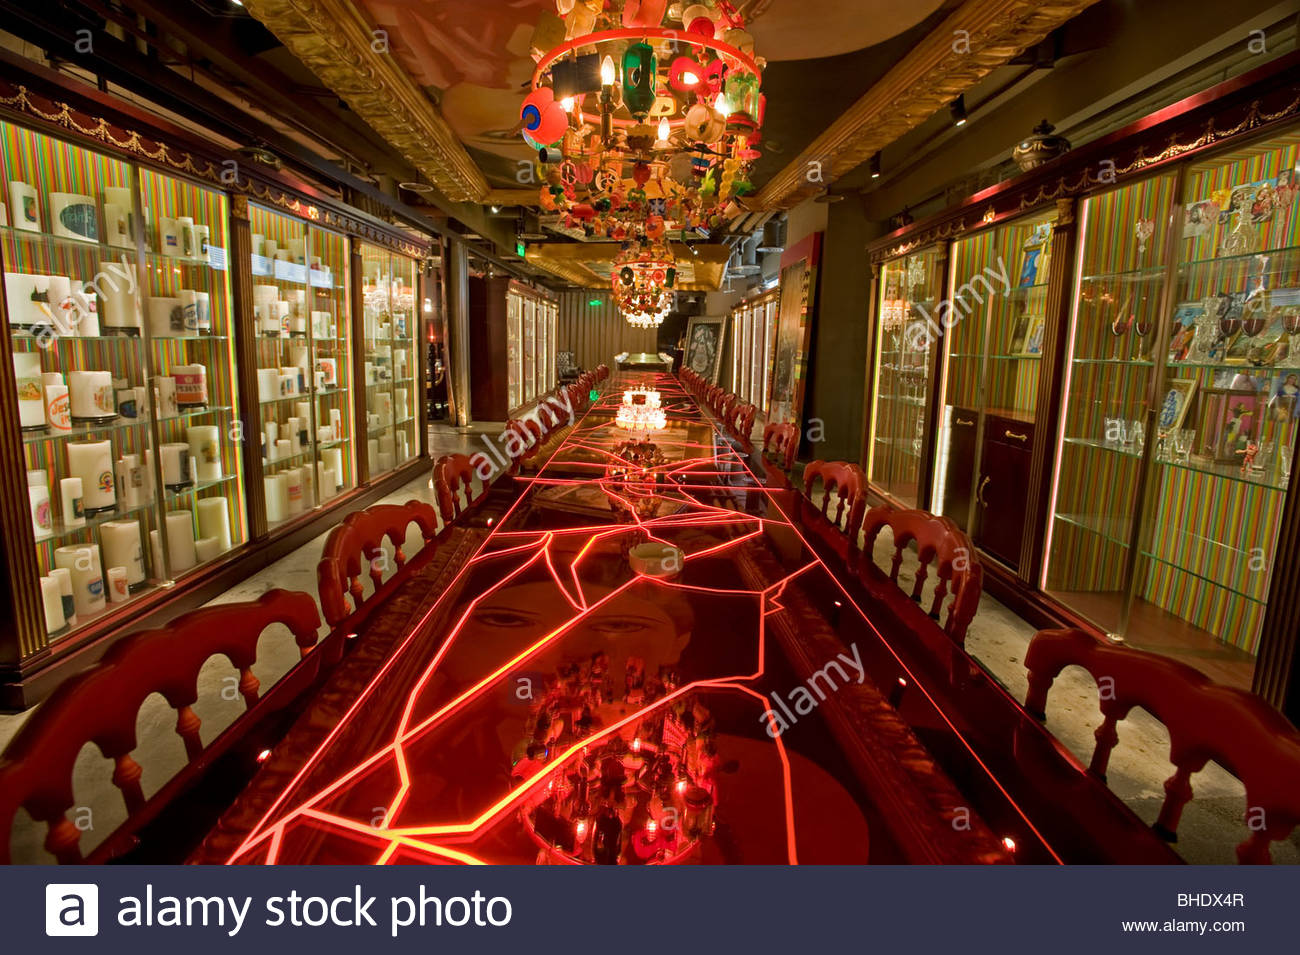 The 'Lan' lounge bar designed by french designer Philippe Stark is 4000 square meters. Beijing, china - Stock Image